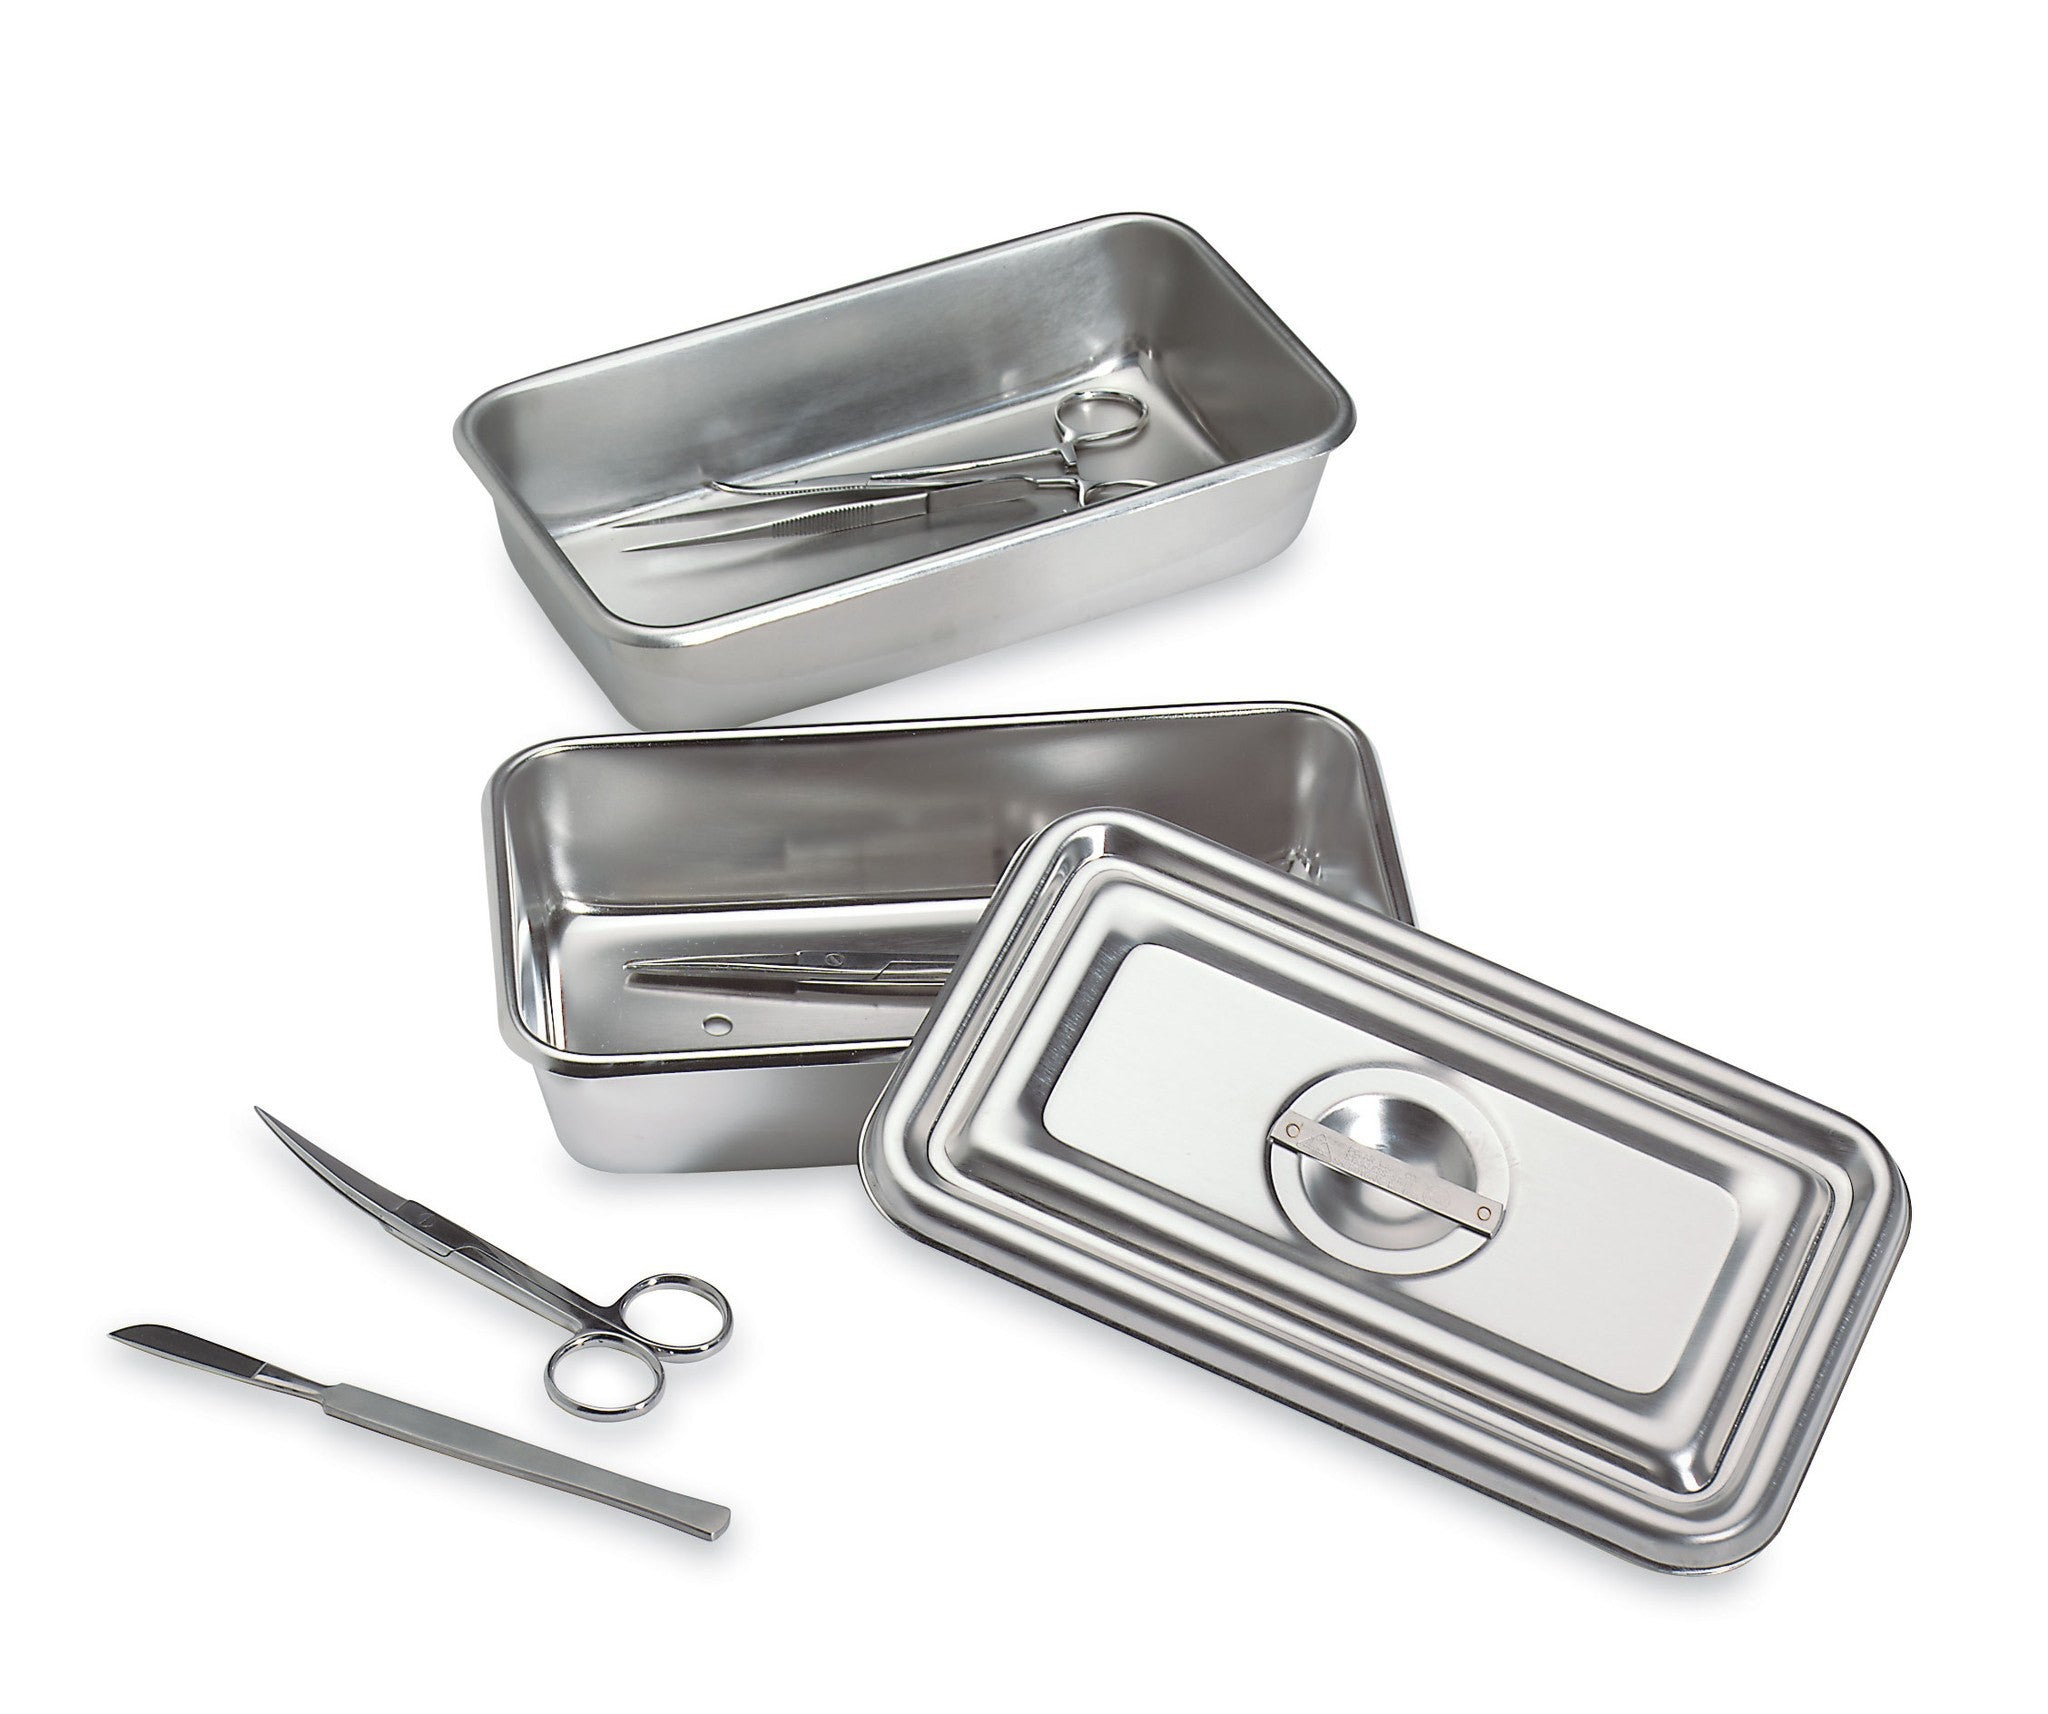 Buy Stainless Steel Instrument Tray with Lid by Tech-Med Services | Home Medical Supplies Online